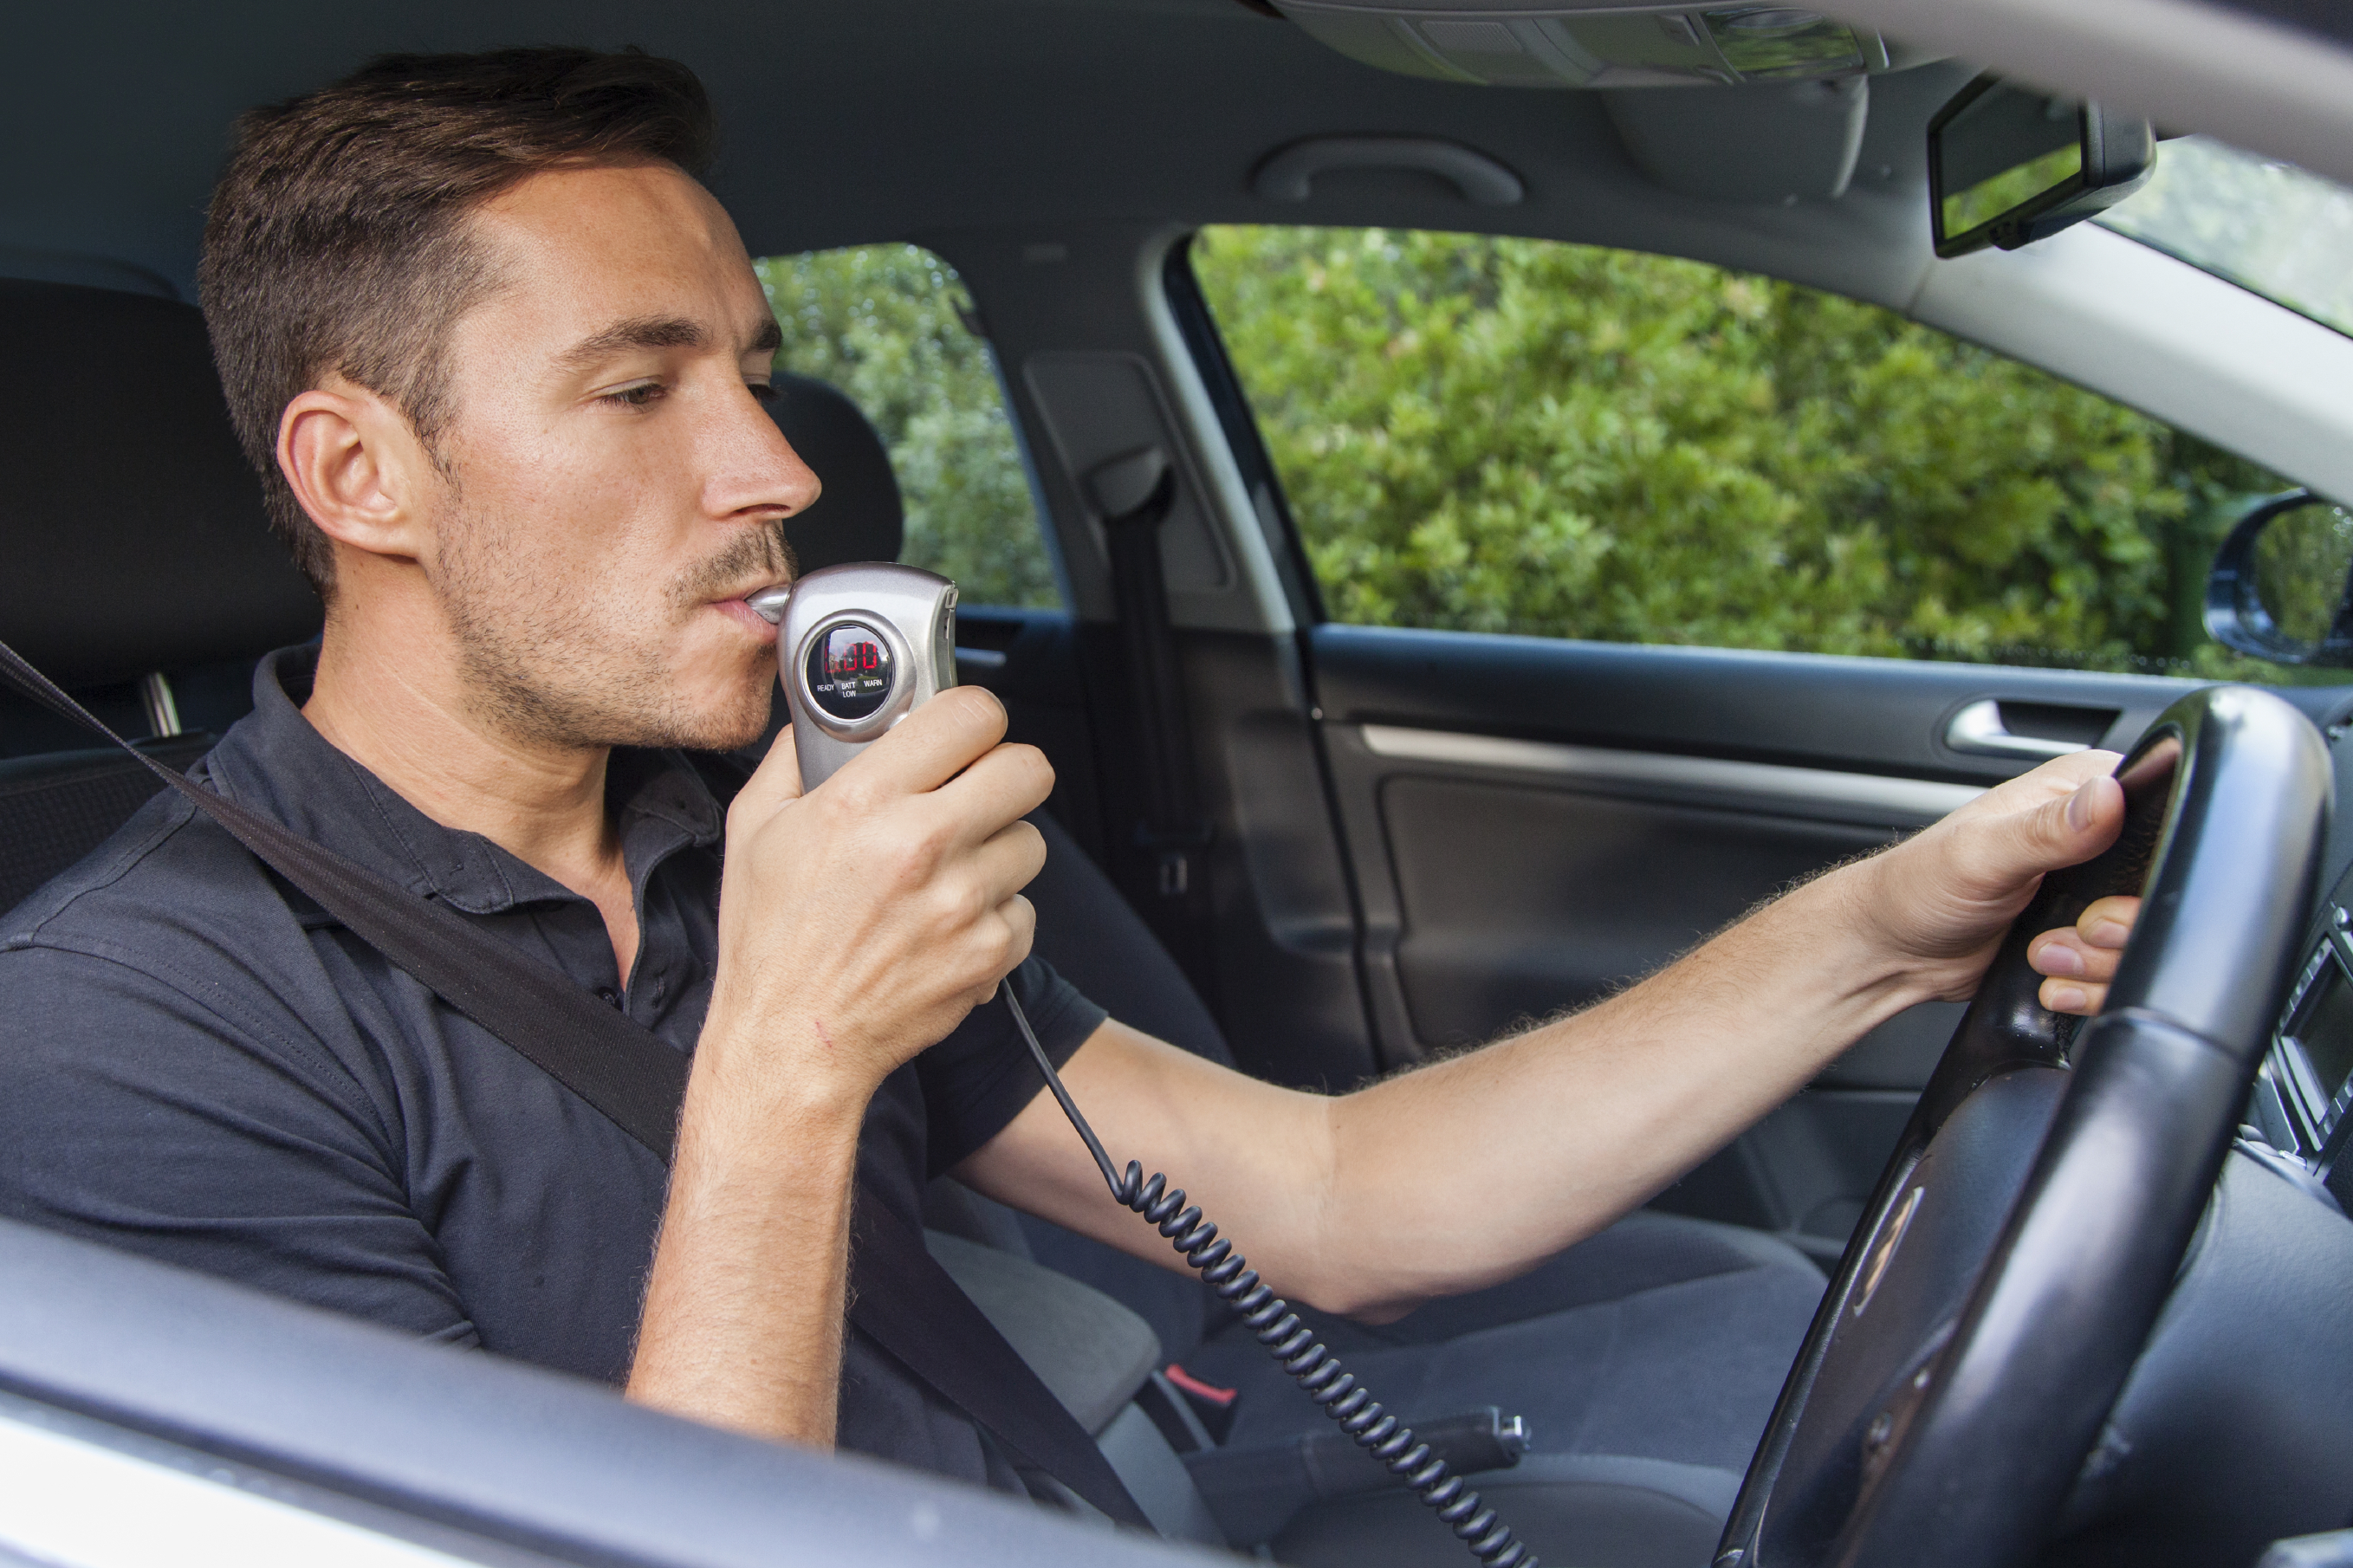 Breathalyzer For Car >> Opinion Breathalyzers Should Not Be Mandated In All Cars In